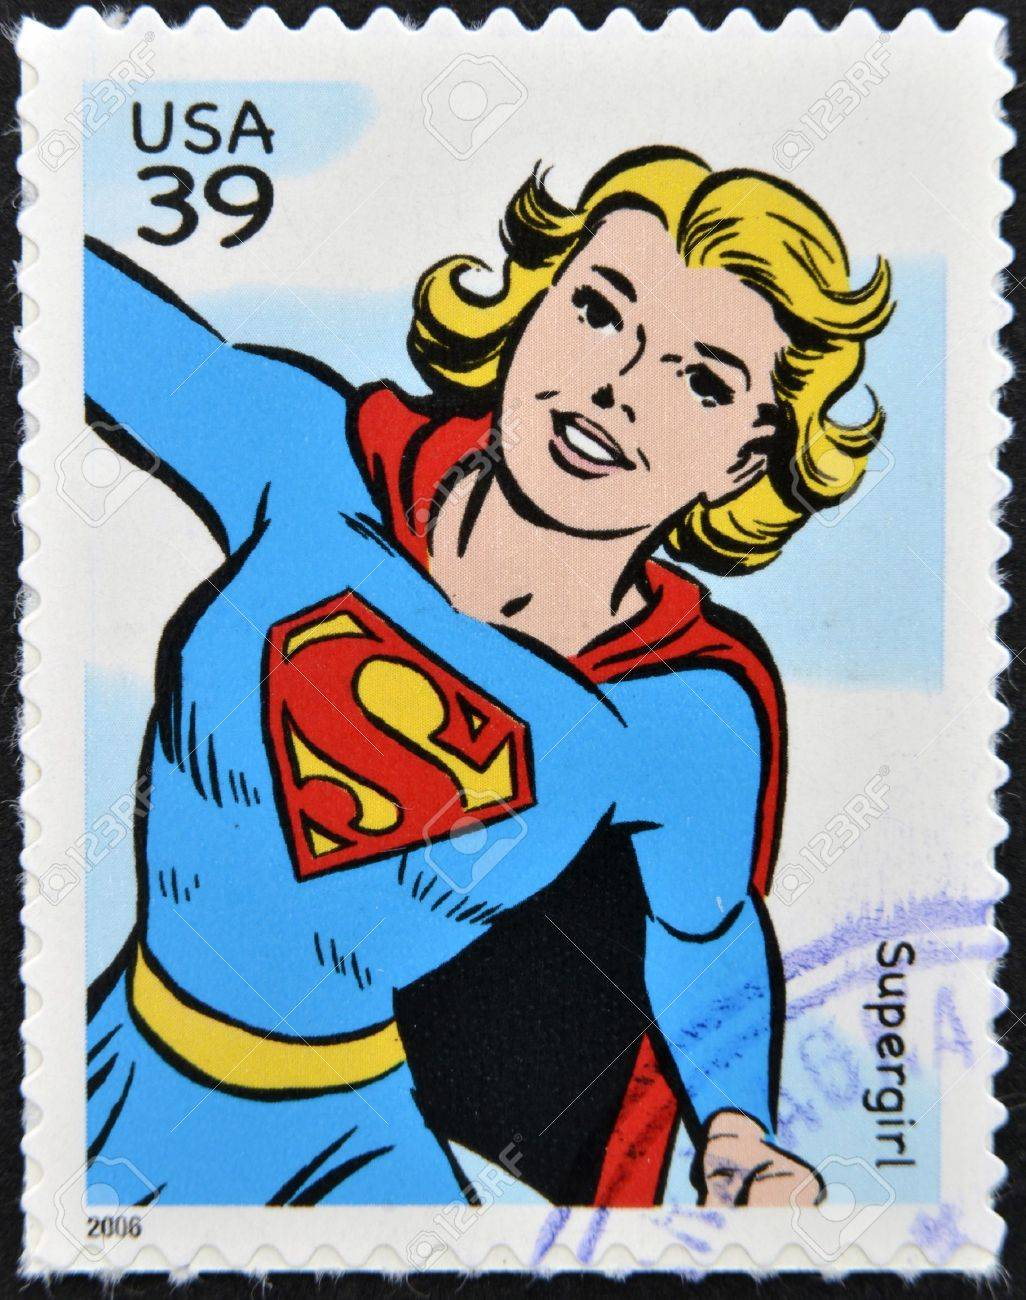 UNITED STATES OF AMERICA - CIRCA 2006: stamp printed in USA shows Supergirl, circa 2006  Stock Photo - 13289204